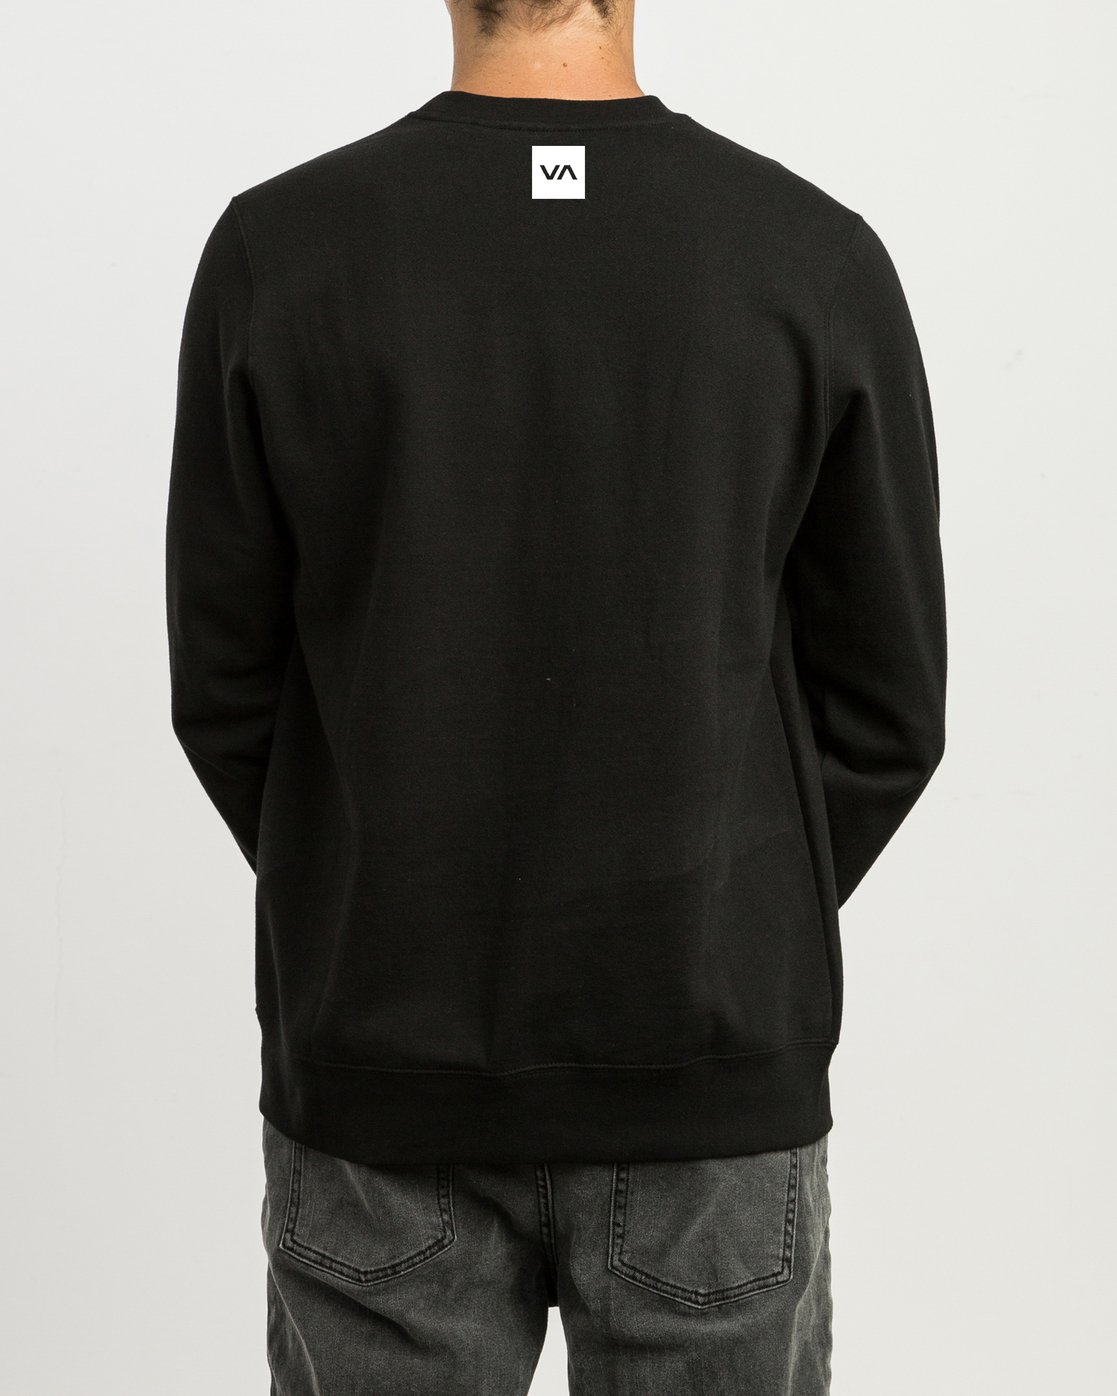 3 Reverted Crew Sweatshirt Black V622TRRR RVCA